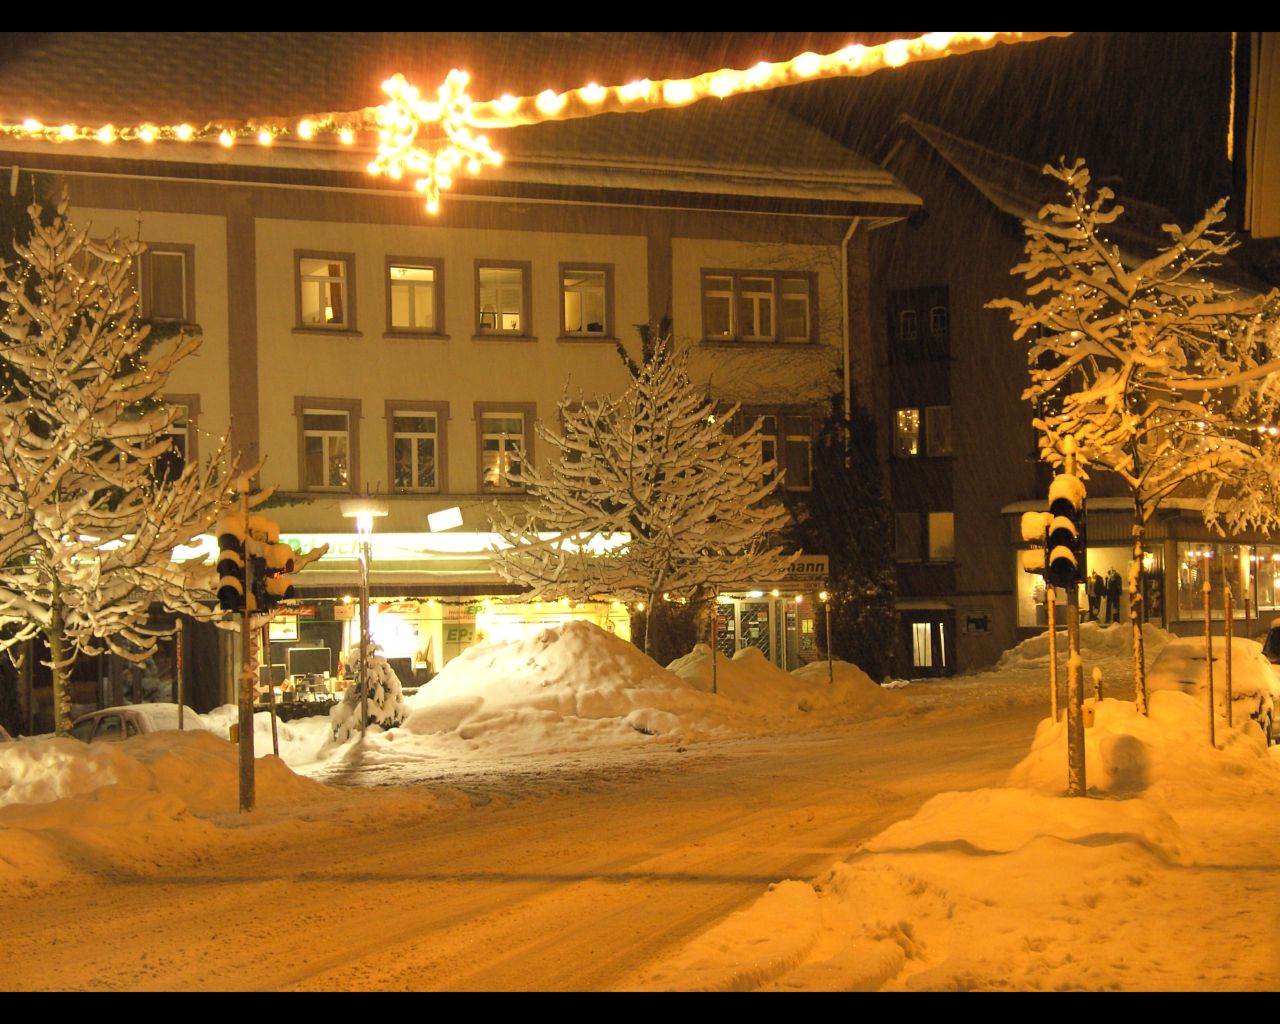 Furtwangen In Einer Winternacht